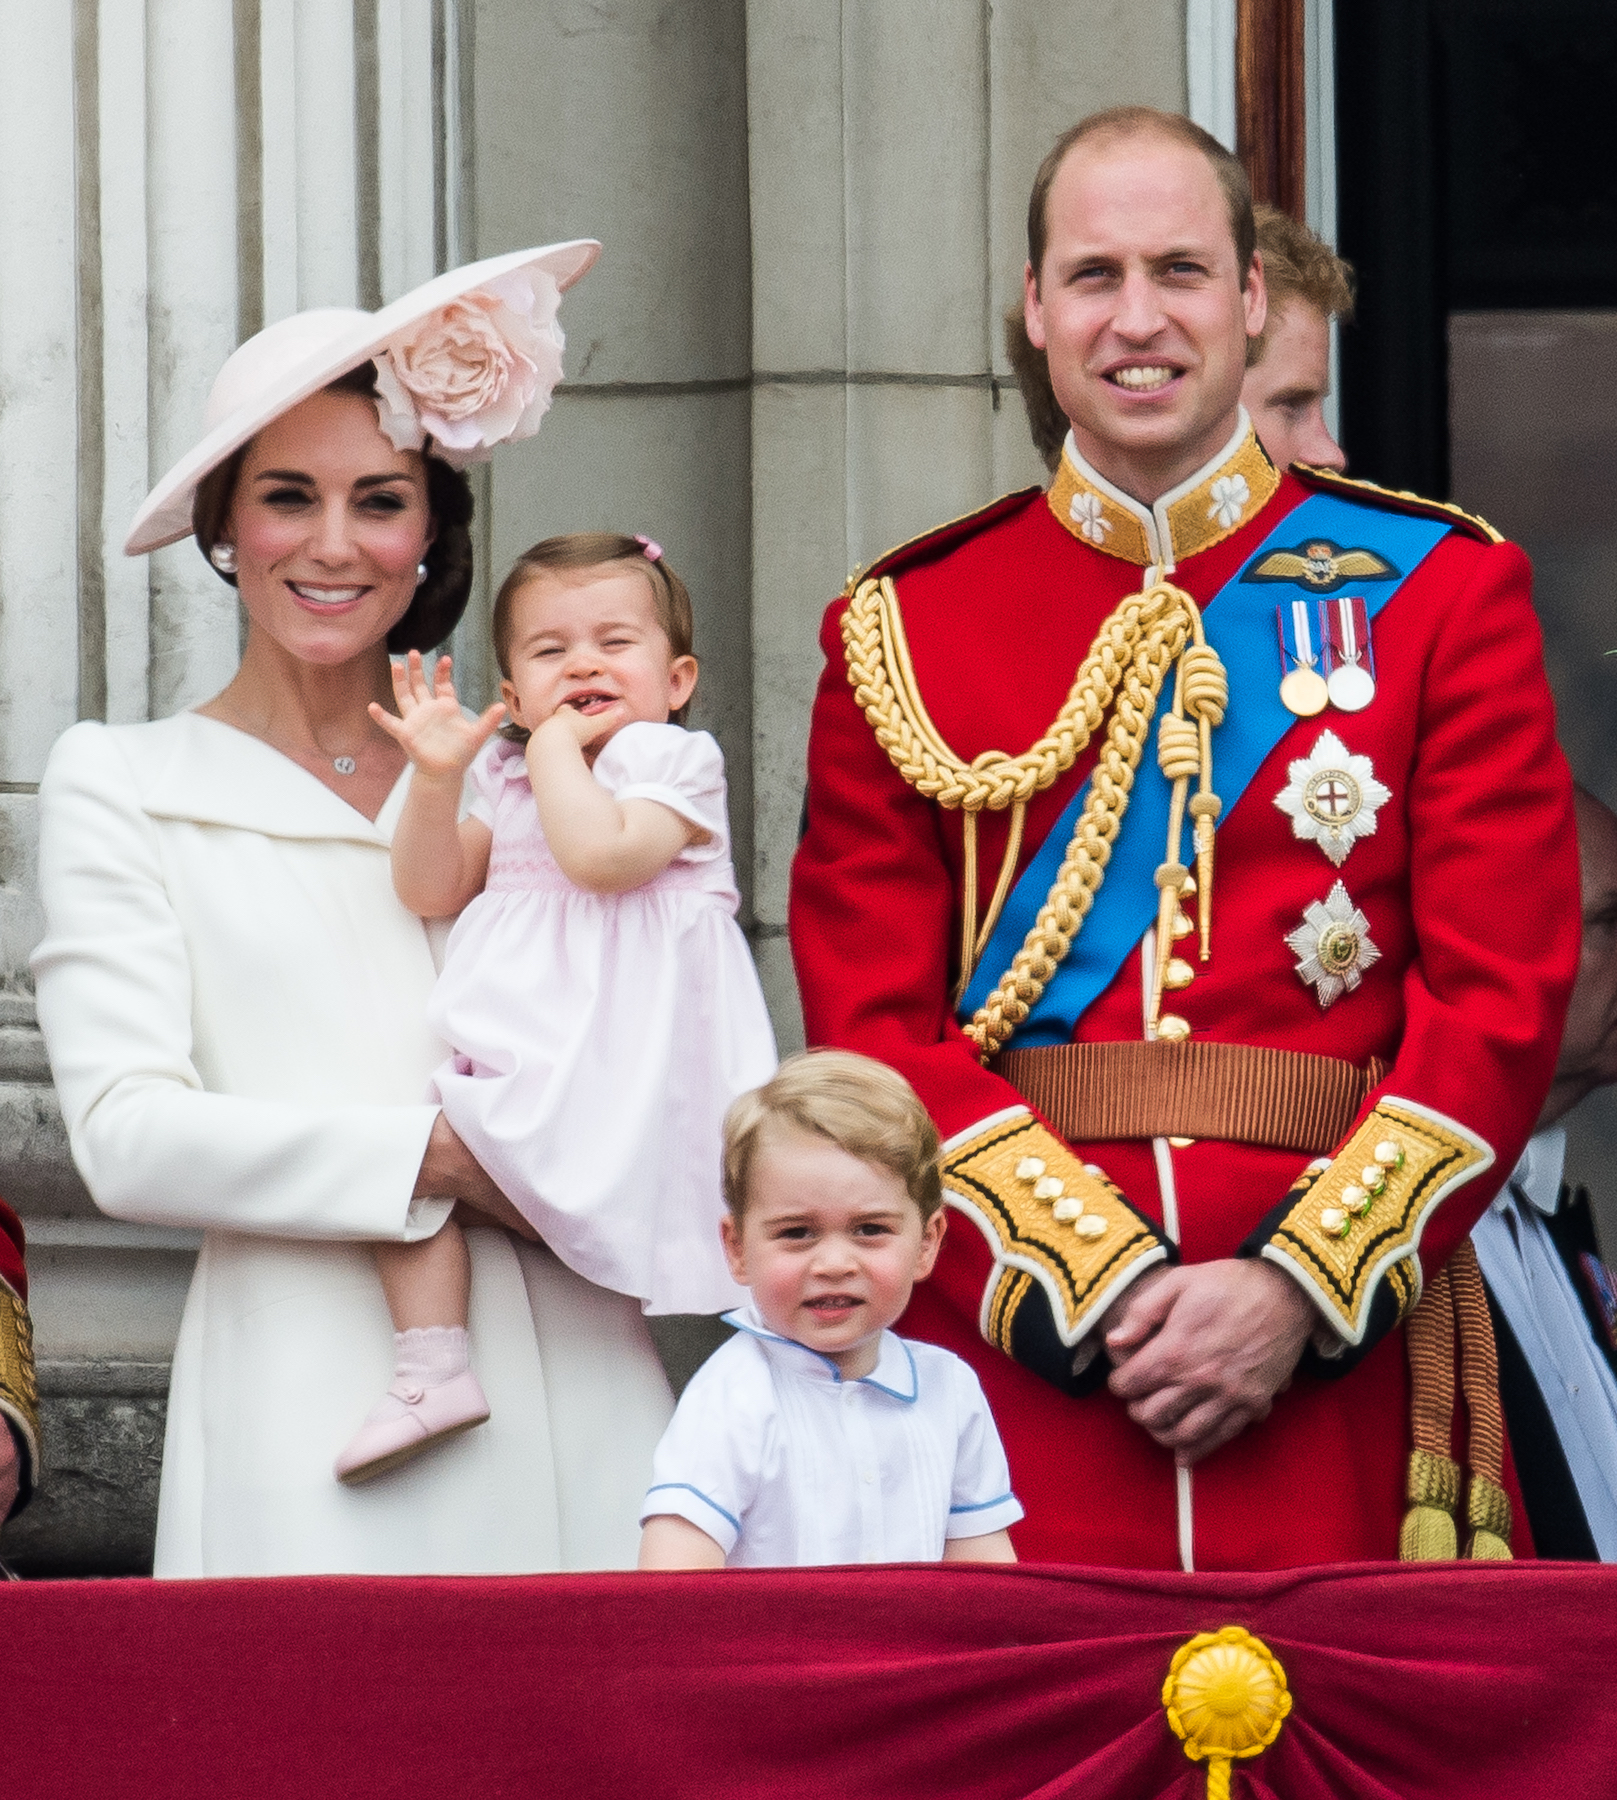 Kate Middle and Prince William With Kids